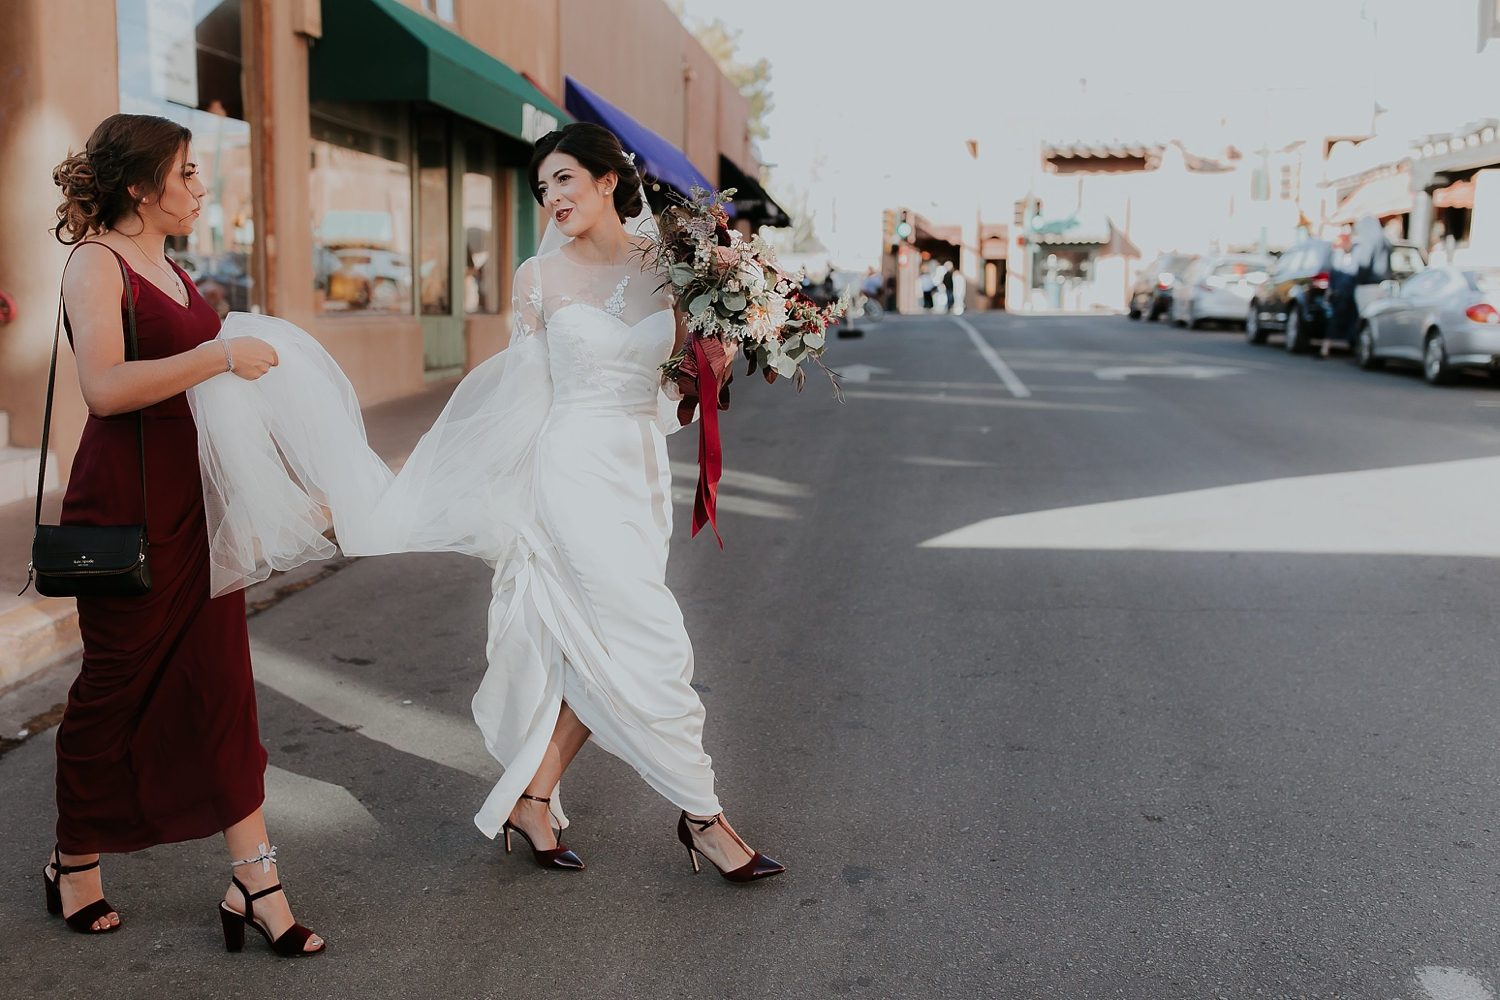 Alicia+lucia+photography+-+albuquerque+wedding+photographer+-+santa+fe+wedding+photography+-+new+mexico+wedding+photographer+-+la+fonda+santa+fe+wedding+-+santa+fe+fall+wedding+-+la+fonda+fall+wedding_0042.jpg